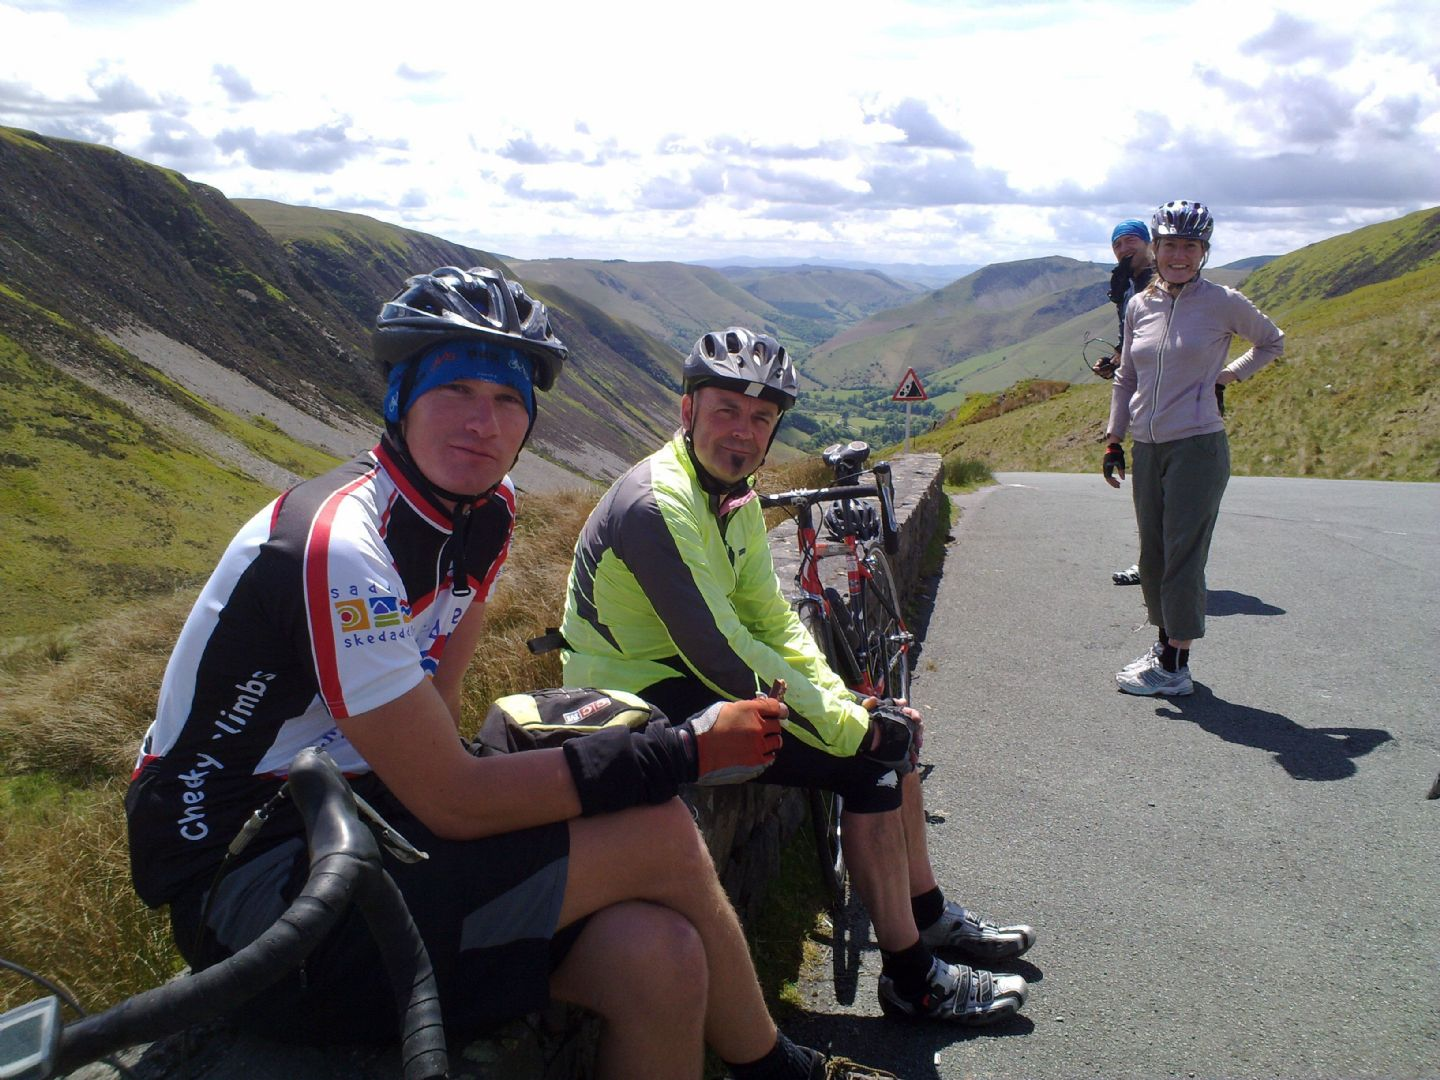 Road Cycling Weekend 16.jpg - UK - North Wales - Guided Road Cycling Weekend - Road Cycling